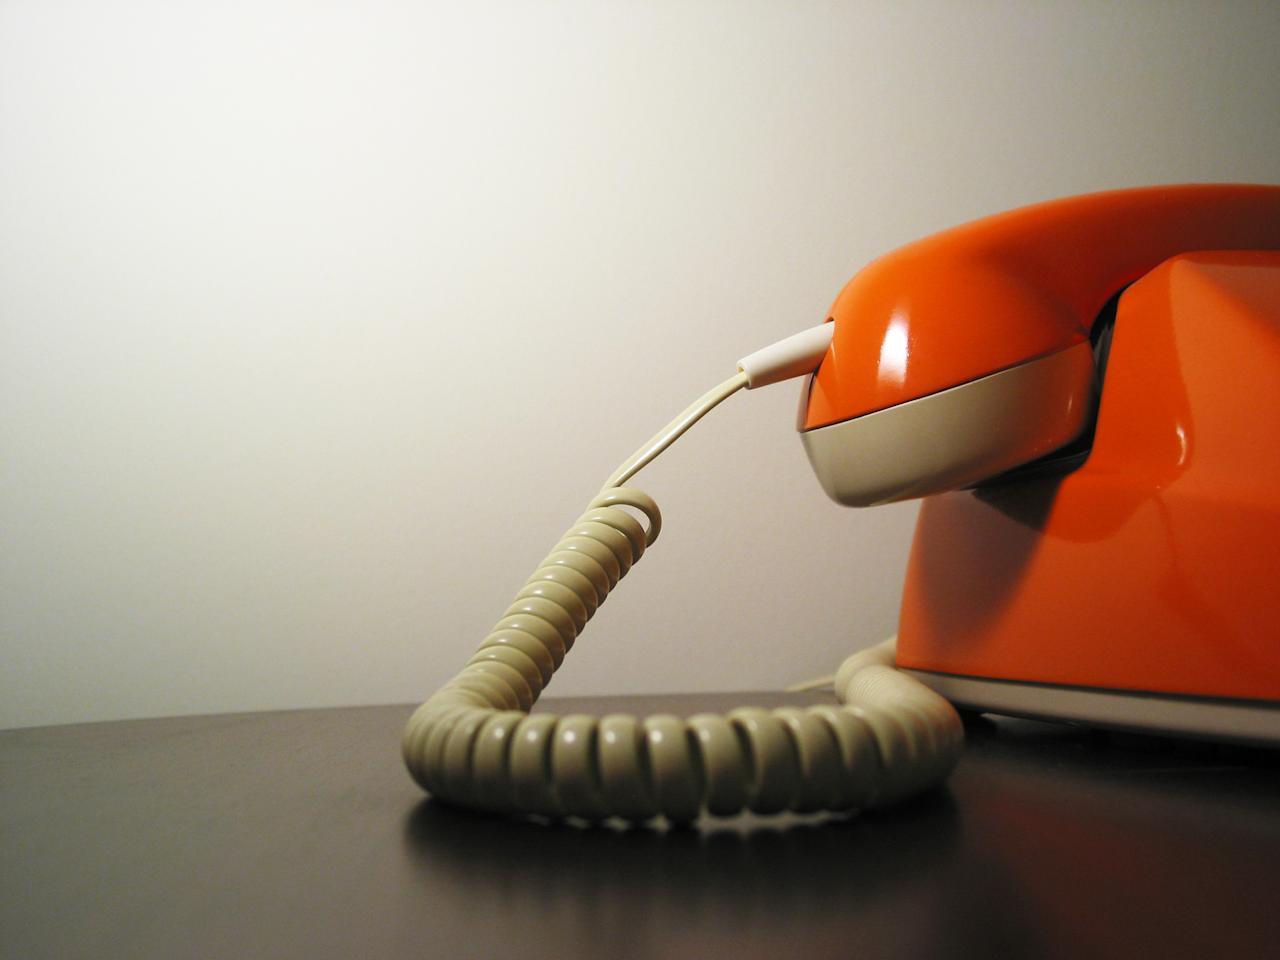 <p>We're not sure how we ever coped with having to answer the phone in a public place (the family home counts) without being able to see who's calling first, and being unable to take a private conversation elsewhere. [Photo: Grant Hutchinson/Flickr] </p>